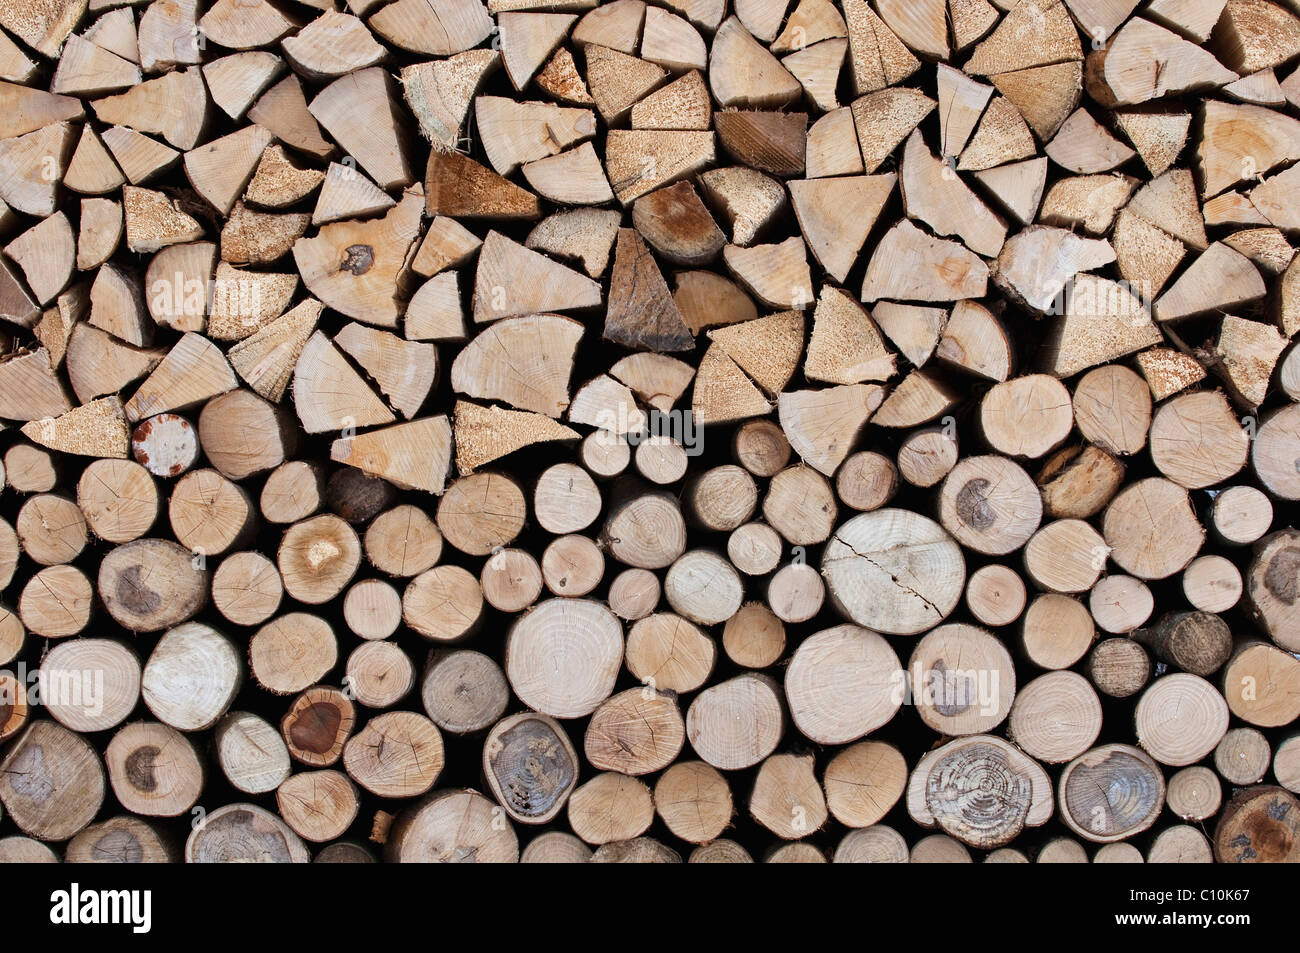 Firewood, stacked roundwood, logs on top, front side of the stack - Stock Image